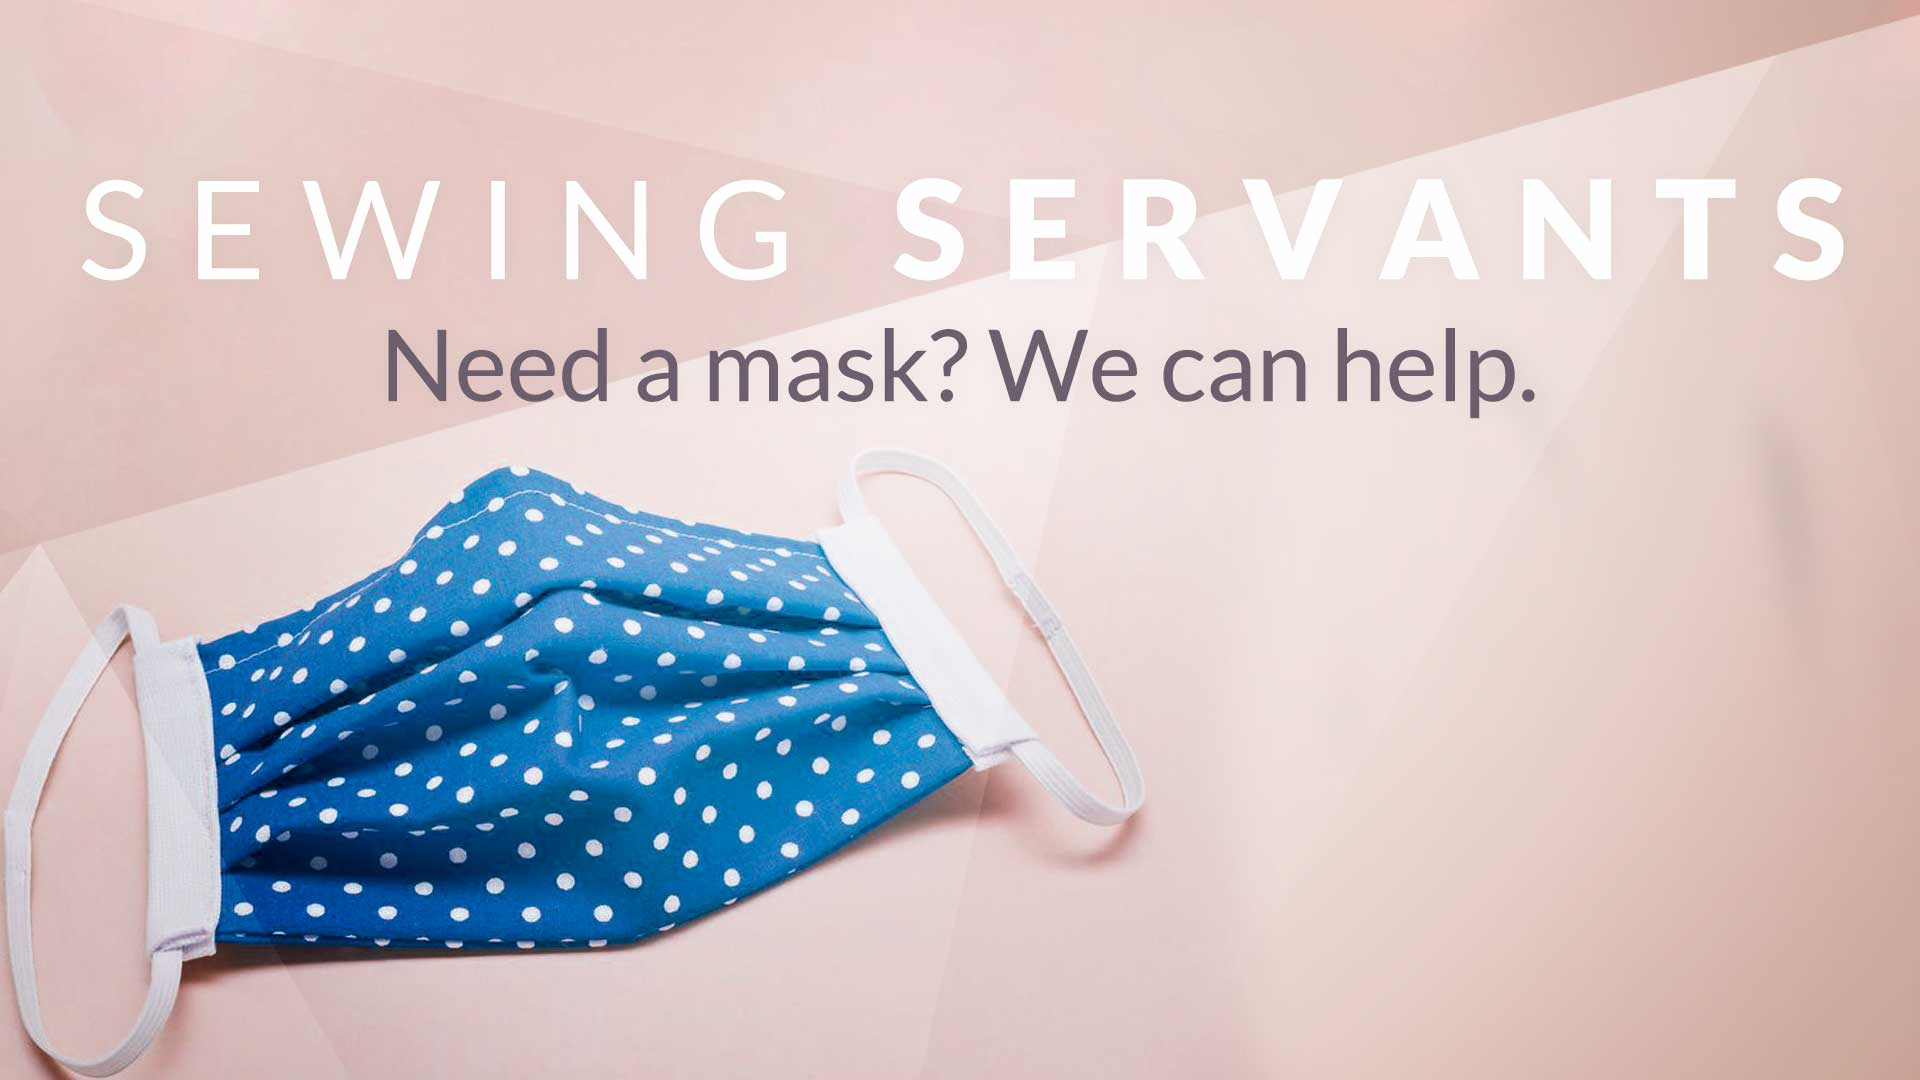 Sewing Servants - Need a mask? We can help.